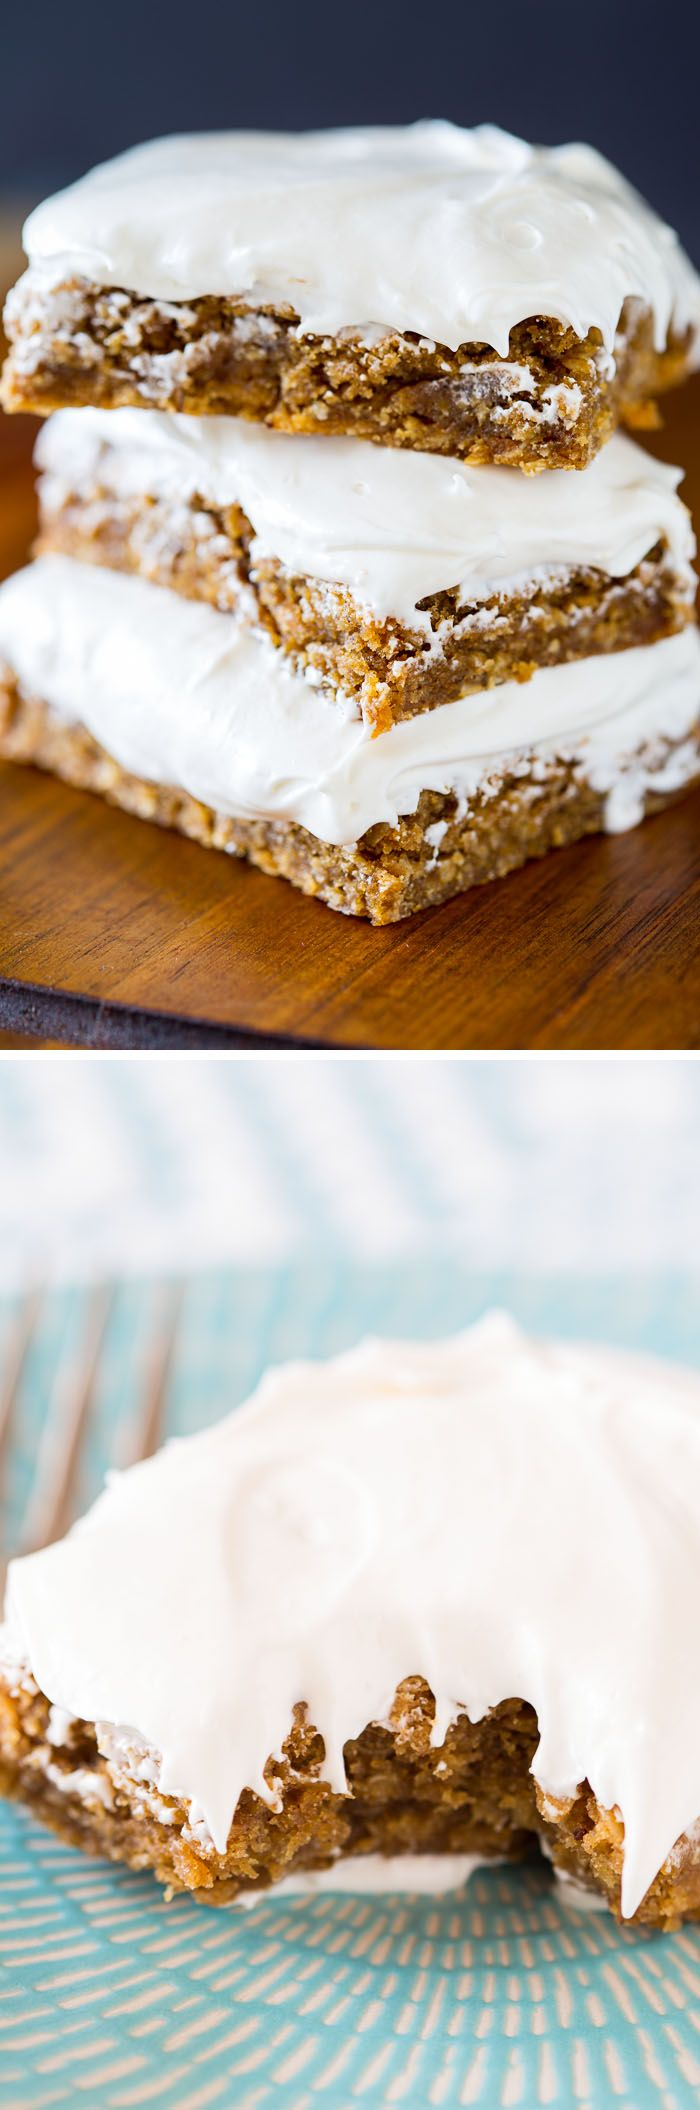 If you love Oatmeal Creme Cookies, you'll adore this recipe for Chewy Brown Butter Oatmeal Creme Pie Bars. They're delicious and easy! #sponsored by @Plugrabutter